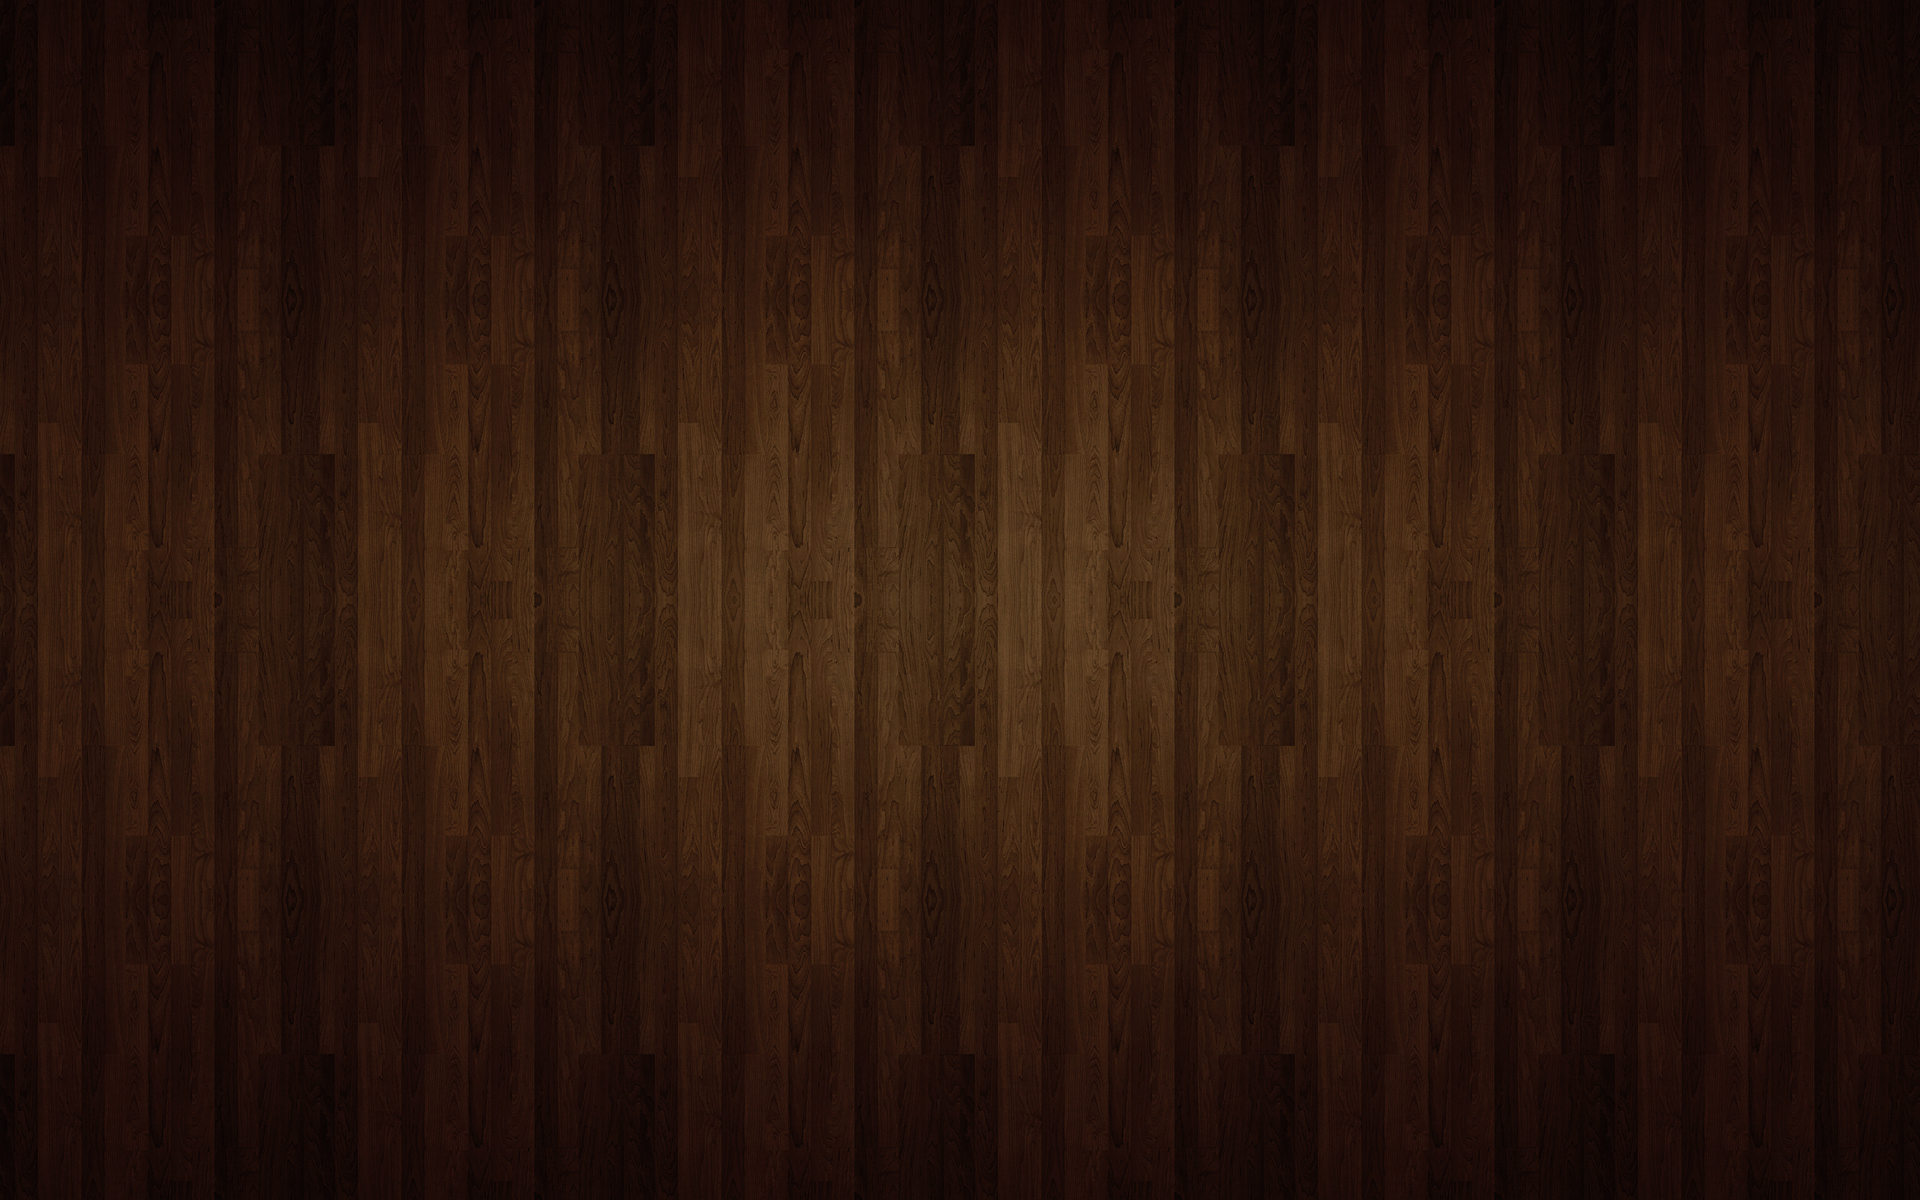 Wood Texture Abstract 1920x1200